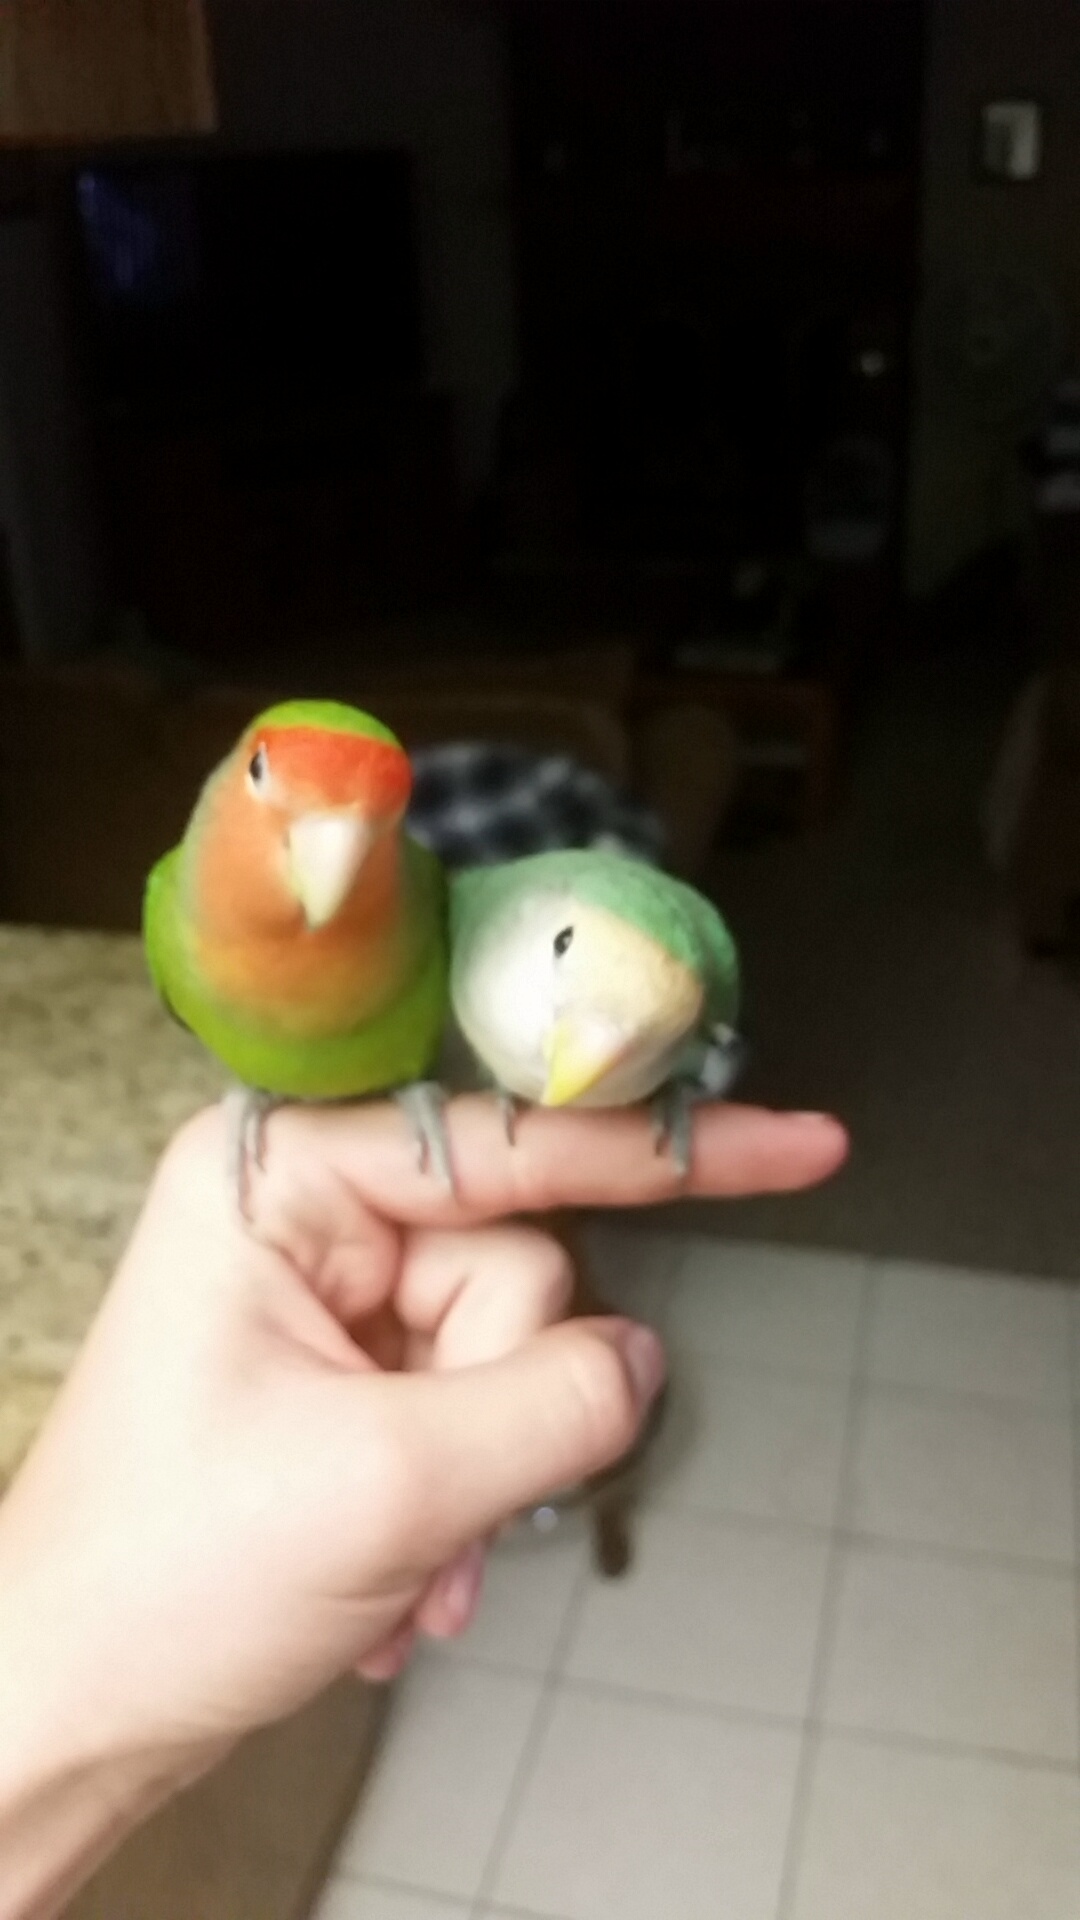 Love birds - what gender?